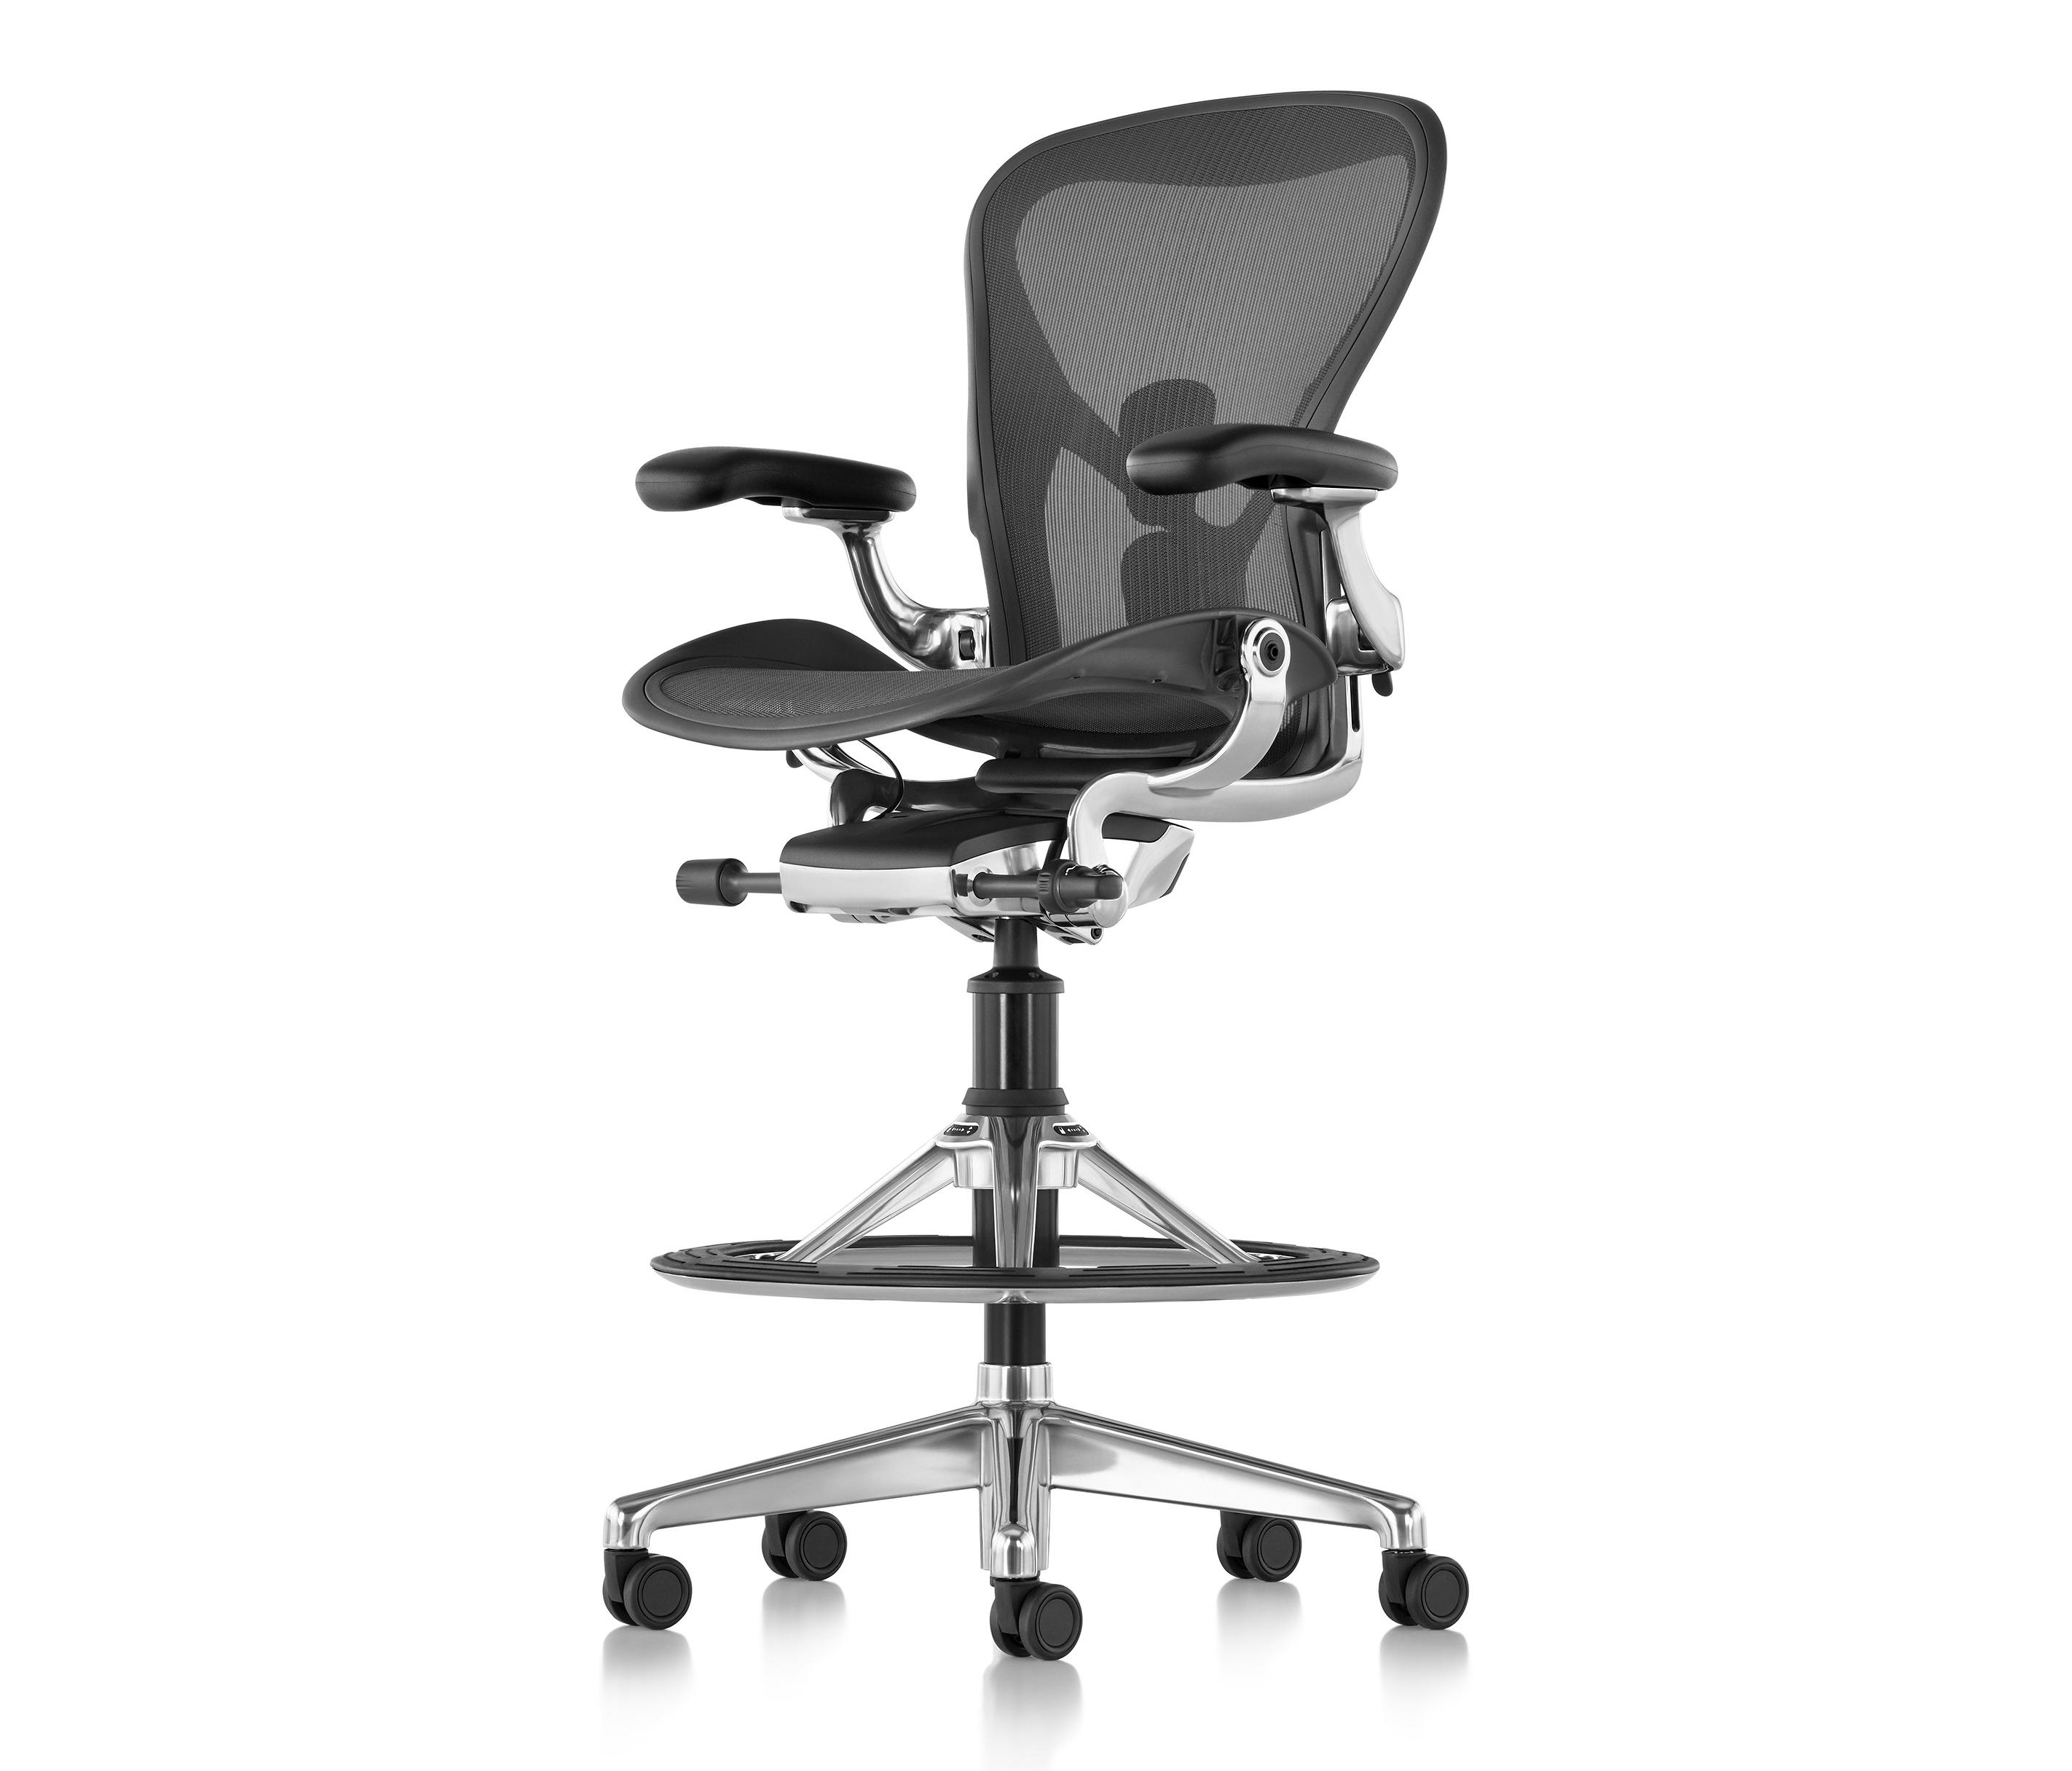 AERON STOOL - Office chairs from Herman Miller  Architonic